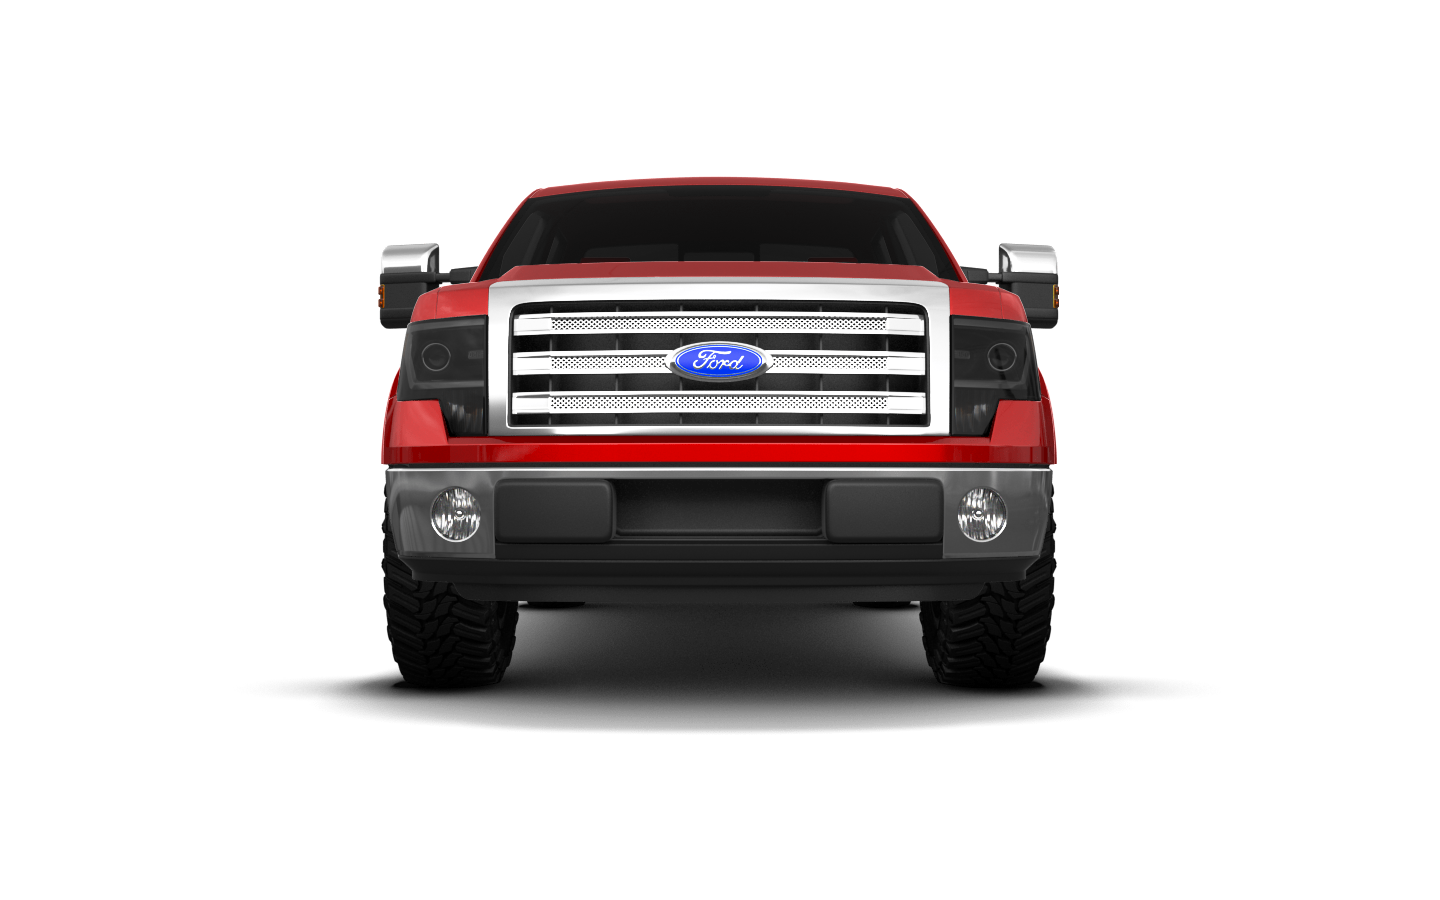 Ford F-150 Crew Cab 4 Door pickup truck 2013